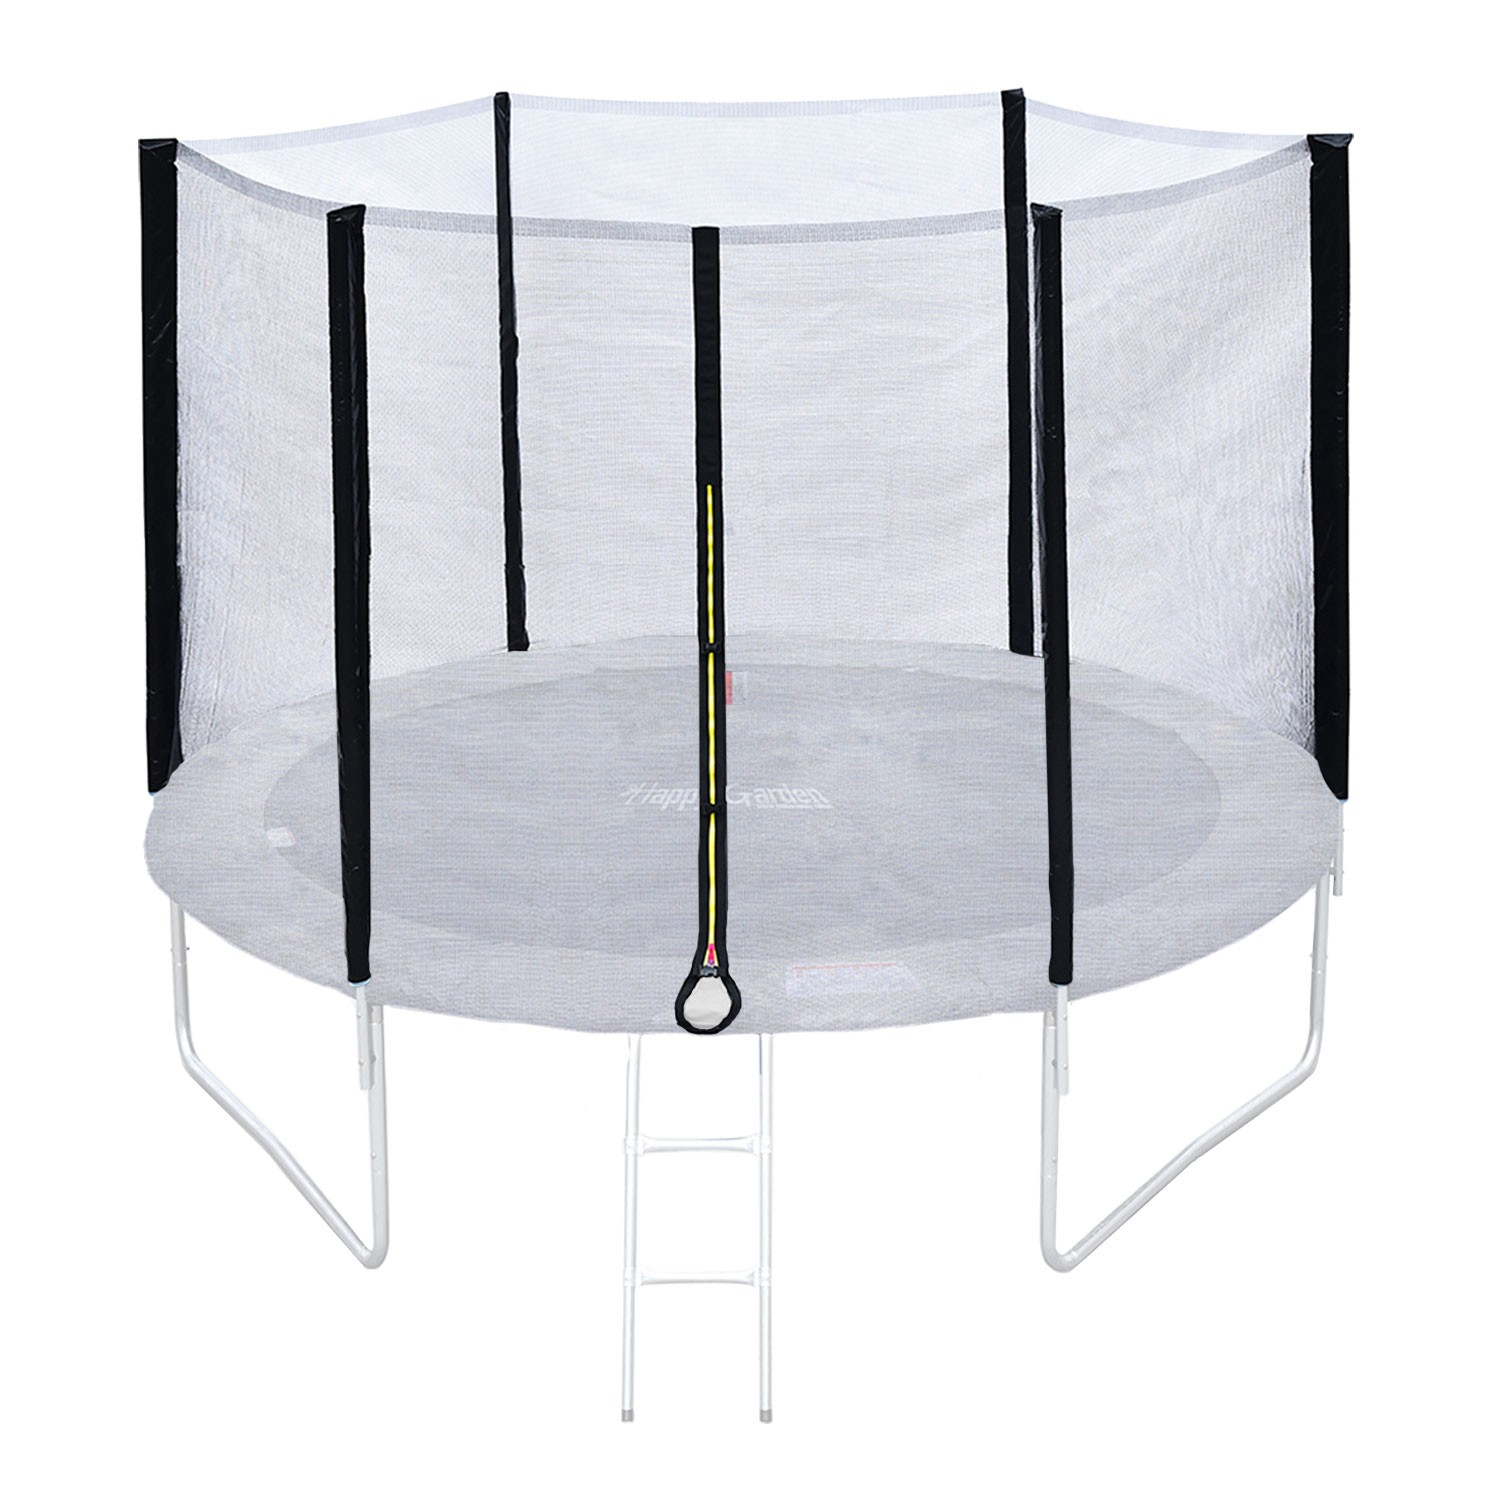 Filet de protection pour trampoline ADELAÏDE